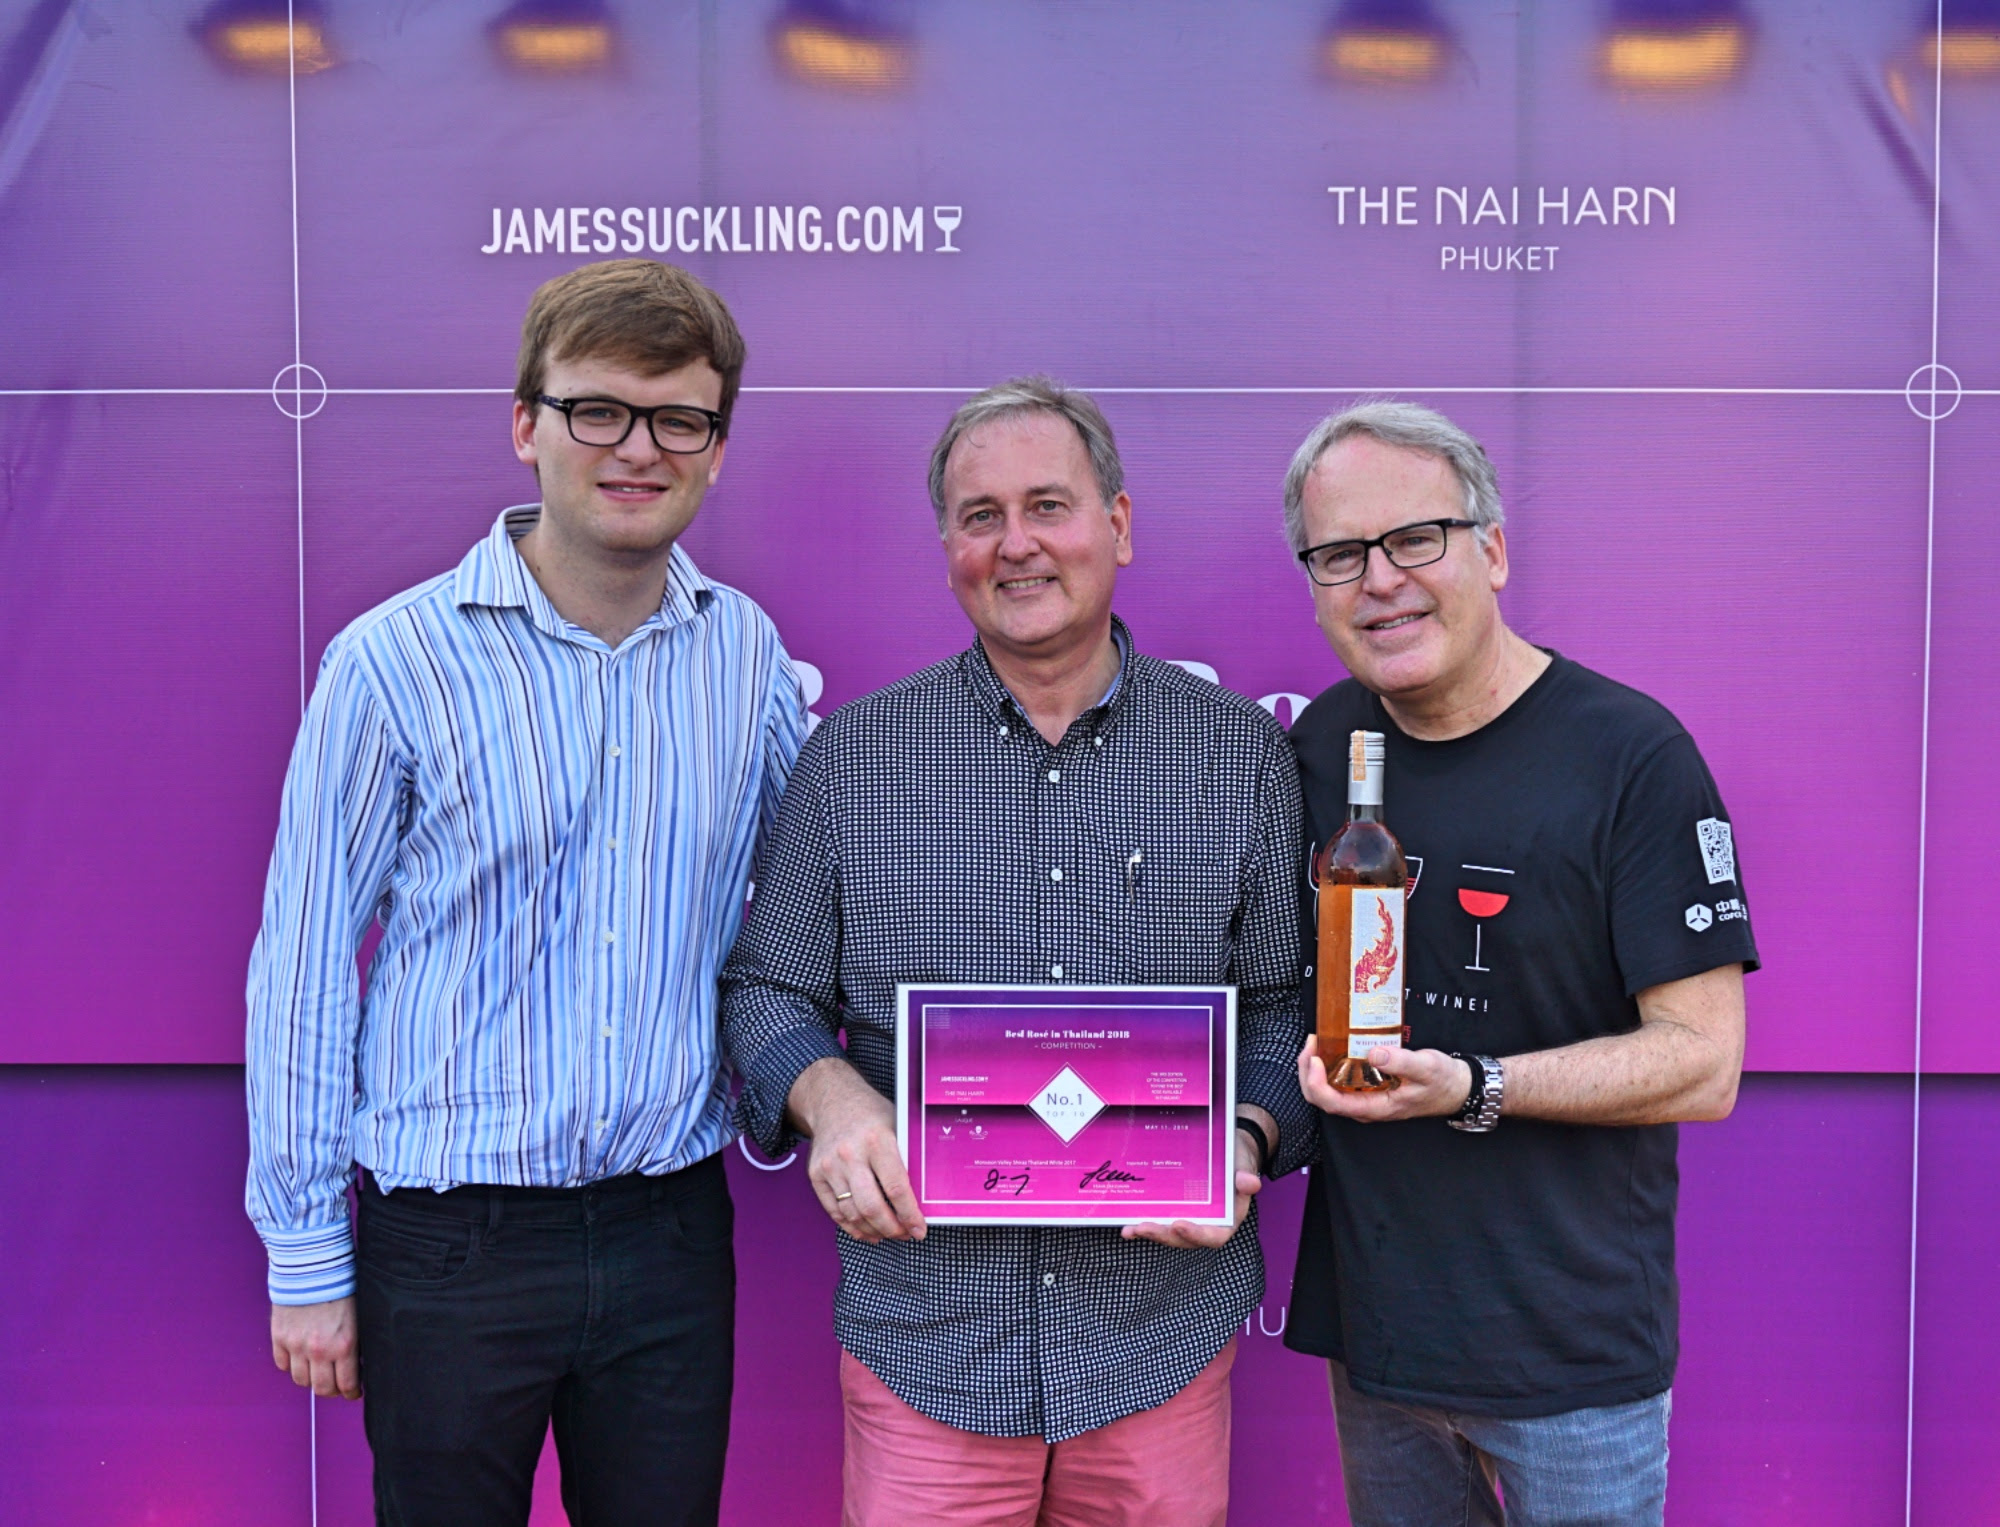 Jack Suckling (left), Frank Grassmann (centre) General Manager of THE NAI HARN Phuket and James Suckling (right) at the BEST ROSÉ in THAILAND awards ceremony